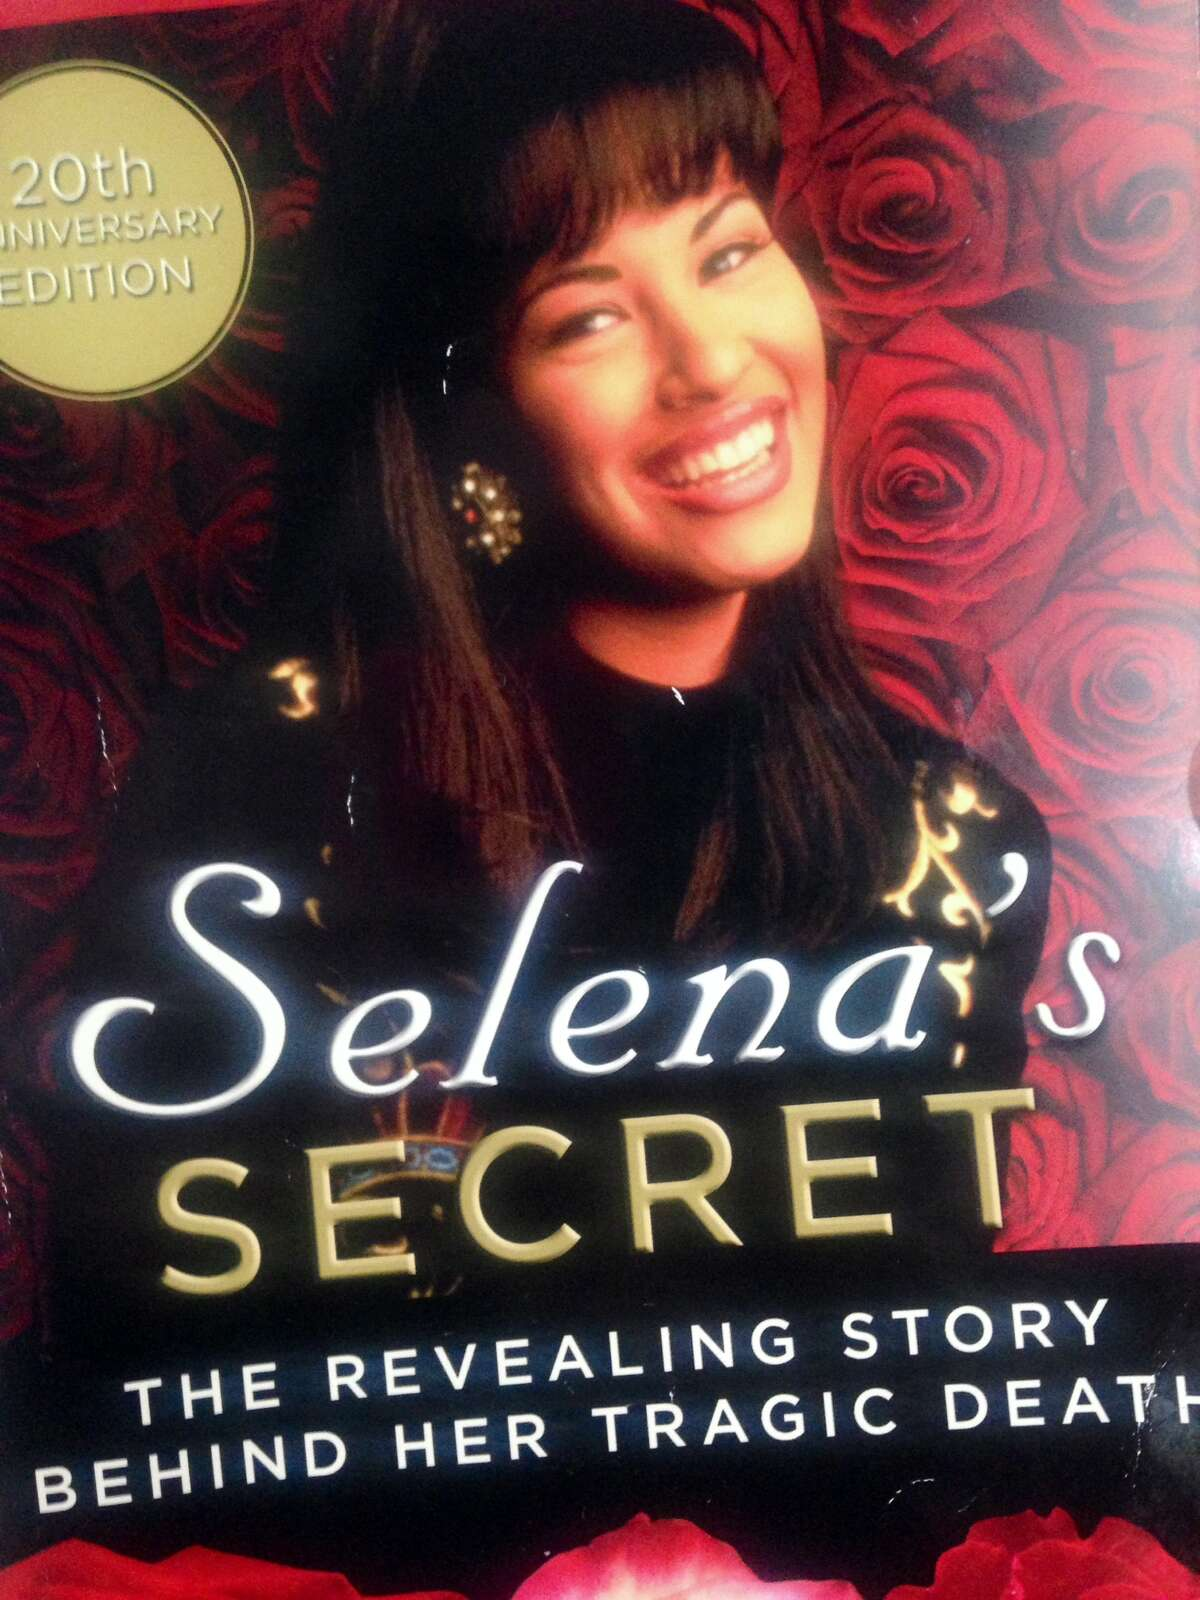 """Here are 26 revelations revealed in """"Selena's Secret,"""" a book that fueled controversy due to its dive into speculations of an extramarital affair and other claims.1.At the murder scene of Days Inn room 158, a suitcase labeled with Chris Perez's name but filled with Selena's clothes was found. A work permit issued to Selena to work in Mexico was also discovered."""